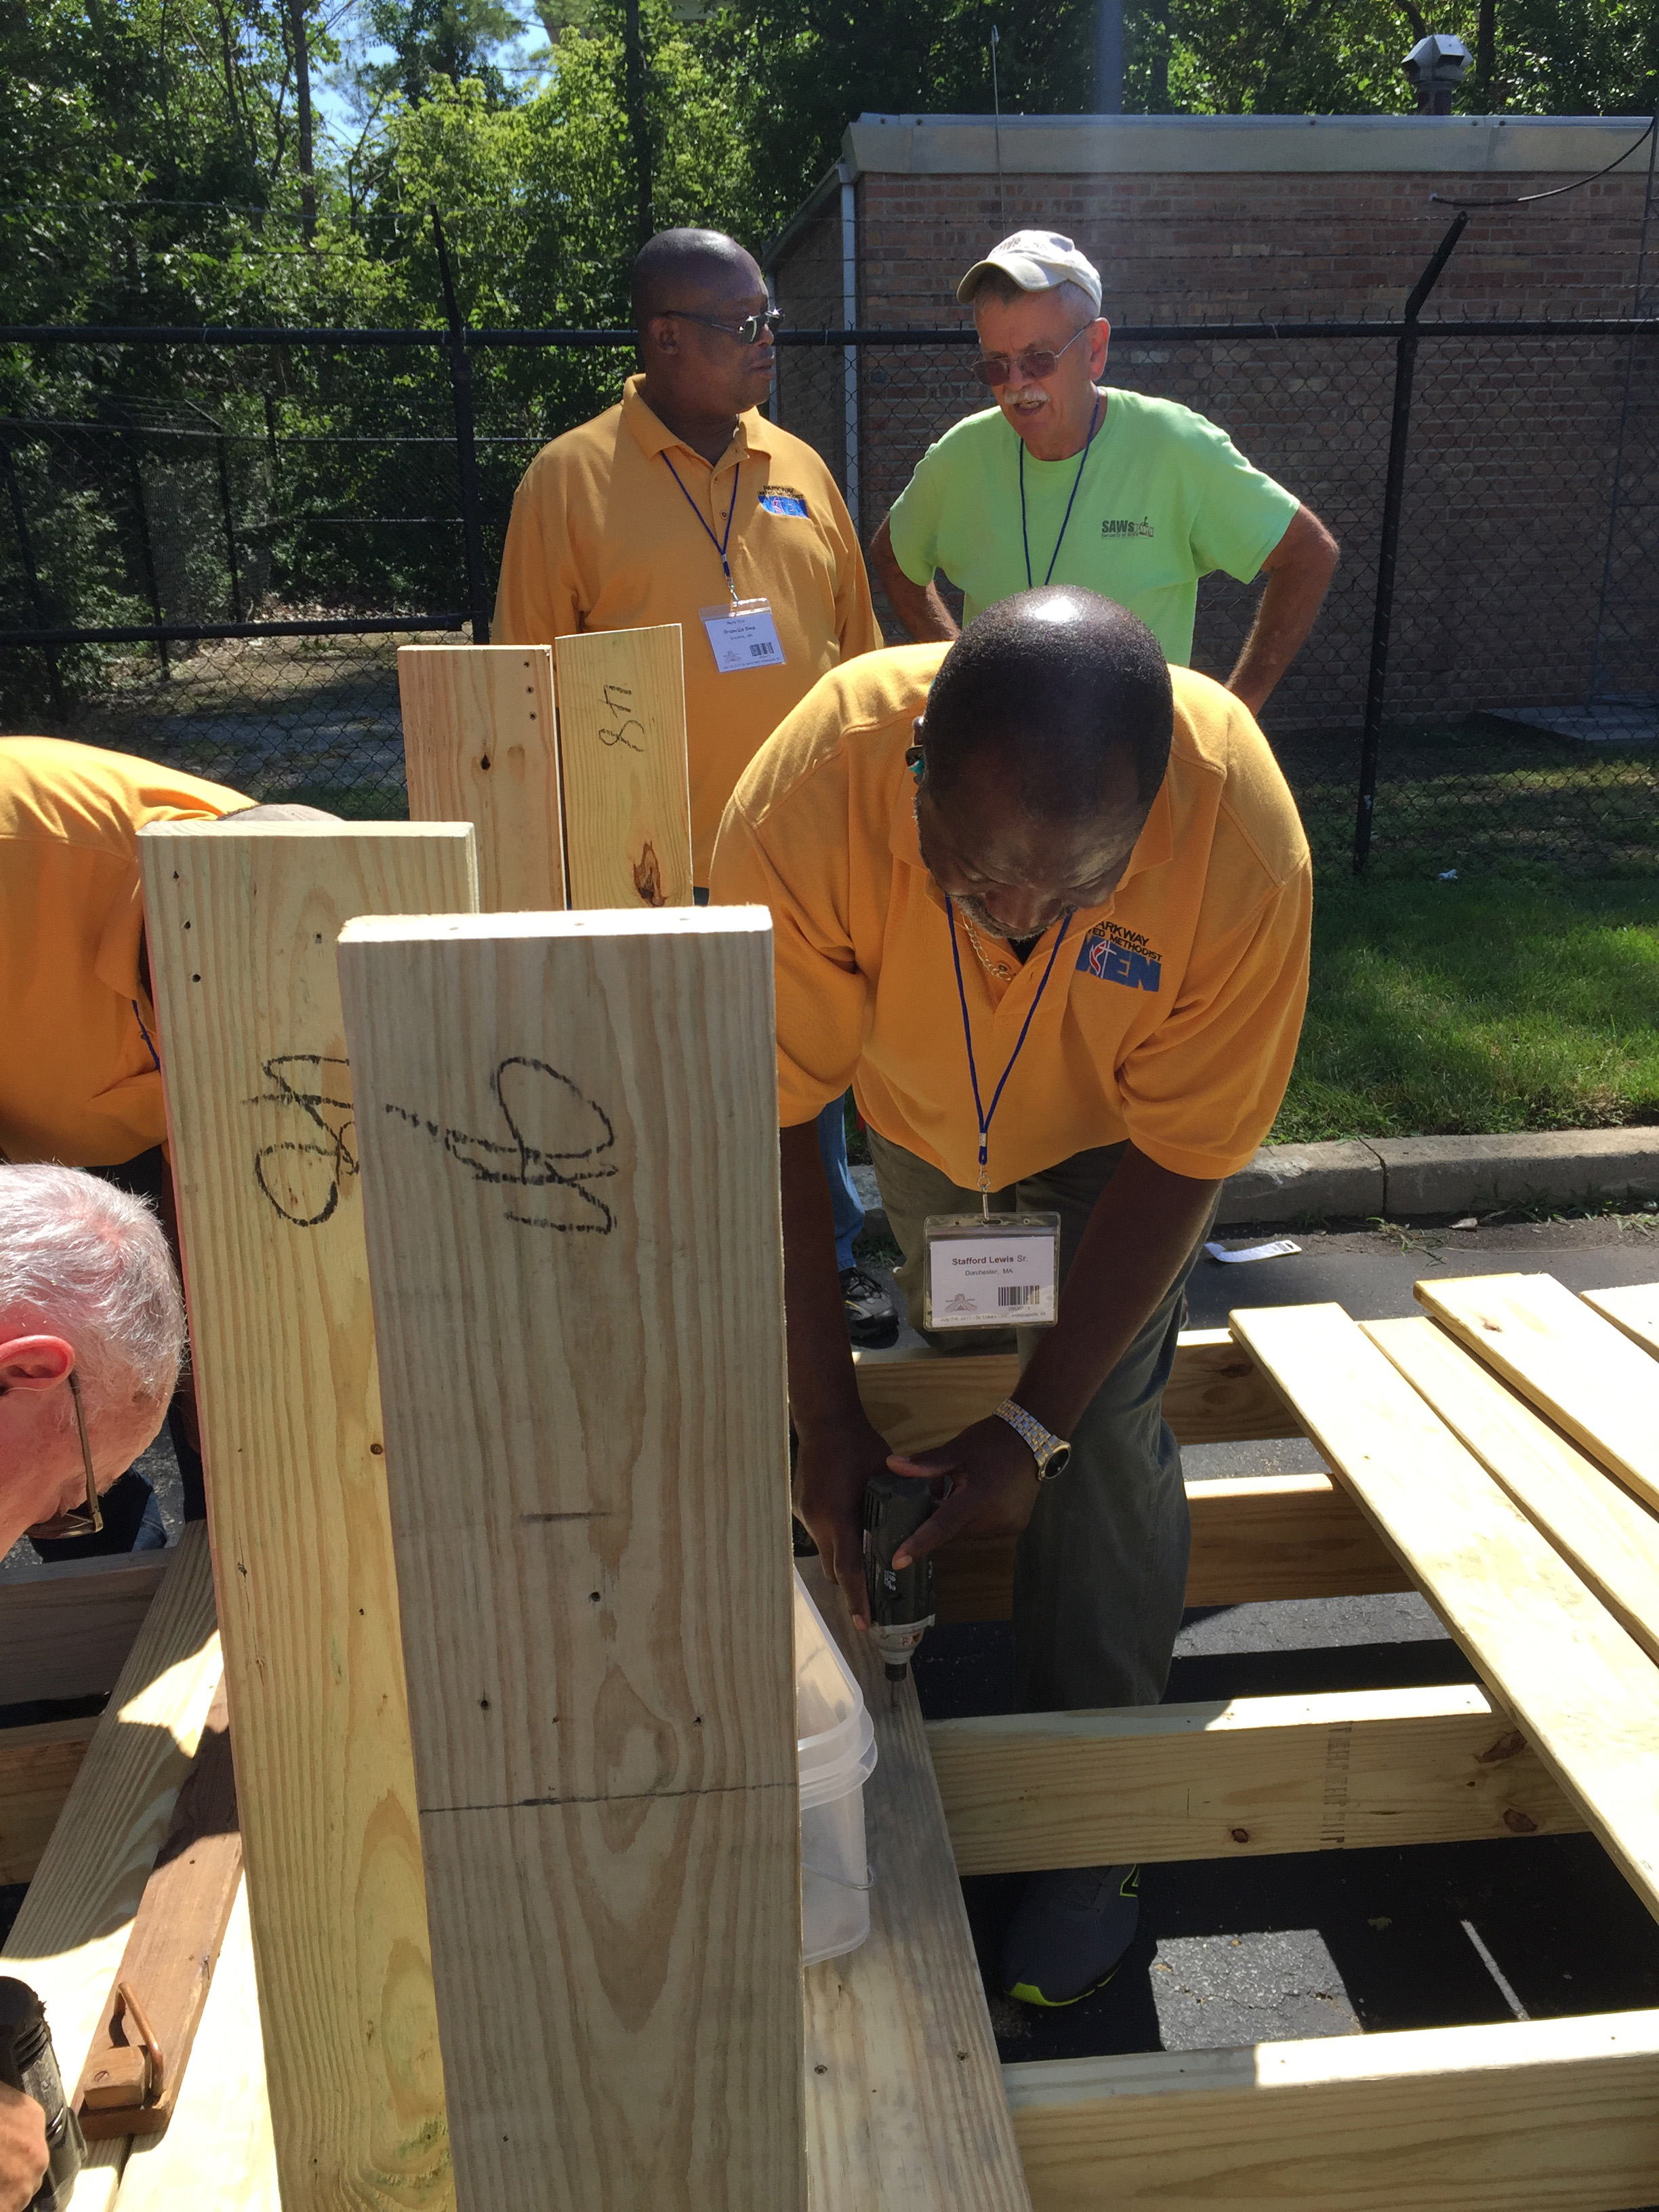 Members of United Methodist Men join with Servants at Work (SAWs), a ministry of St. Luke's United Methodist Church in Indianapolis, to construct wheelchair ramps. Many of the men involved in the project were from Parkway United Methodist Church in Milton, Mass. Photo by Heather Hahn, UMNS.